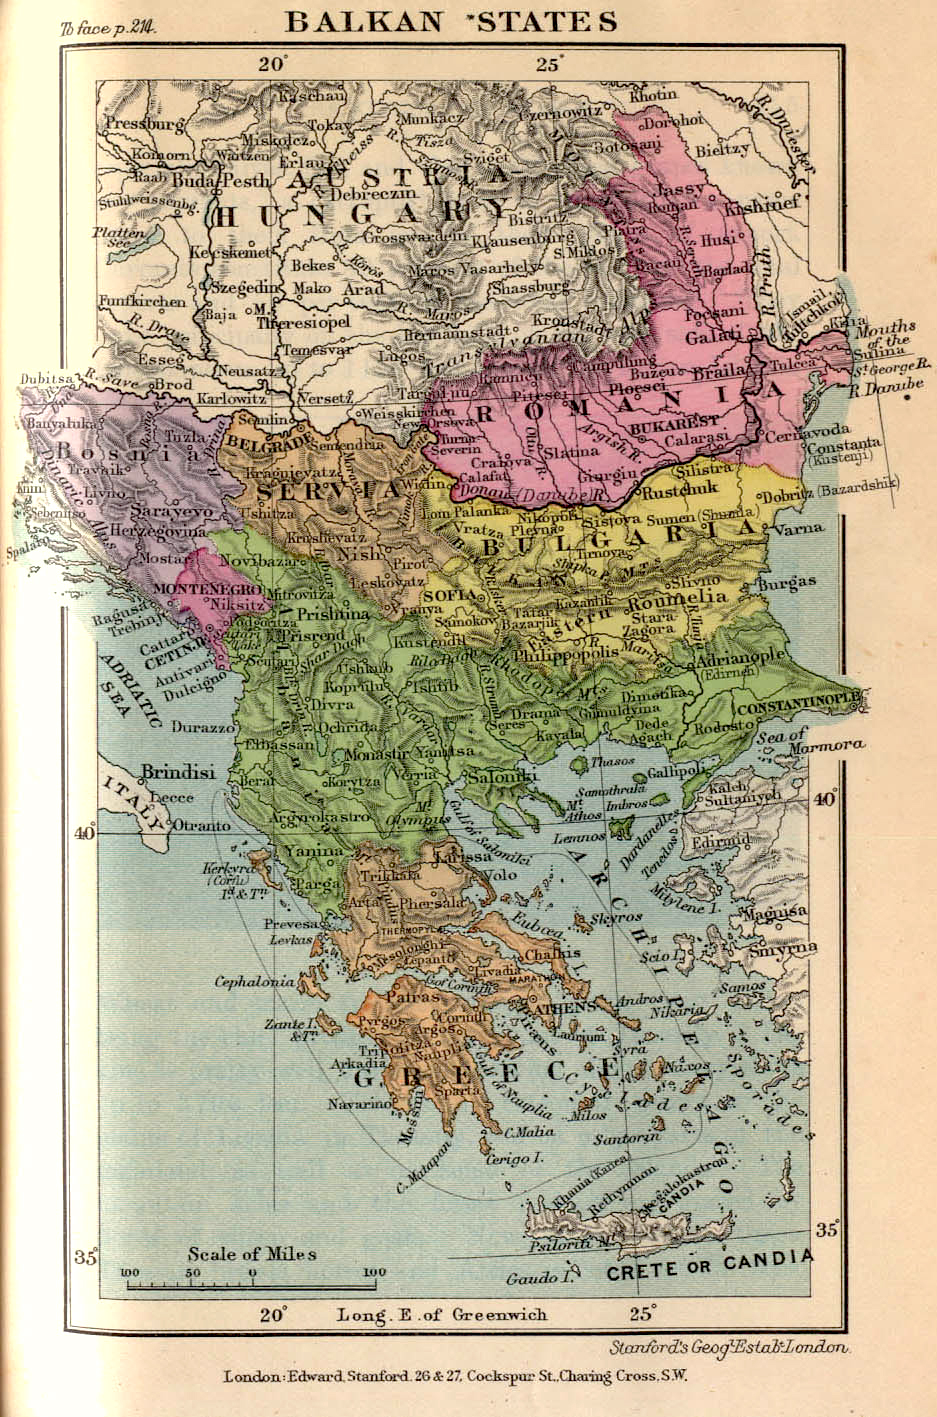 Map of the Balkan States 1899